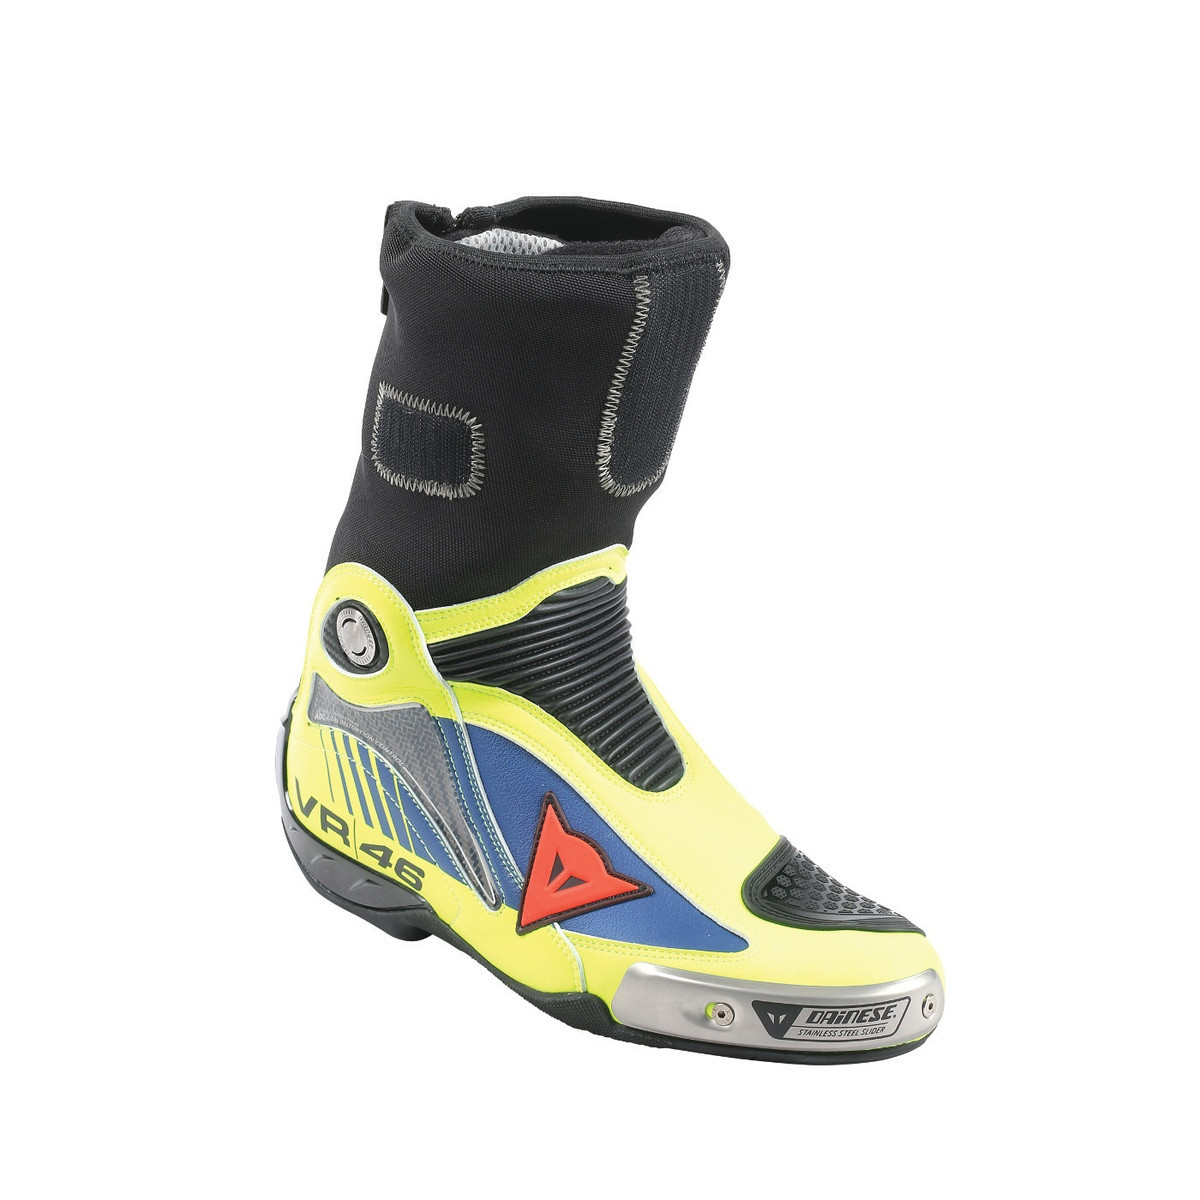 Dainese R AXIAL PRO IN REPLICA D1 BOOTS VAL 16 yellow fluo blue yamaha